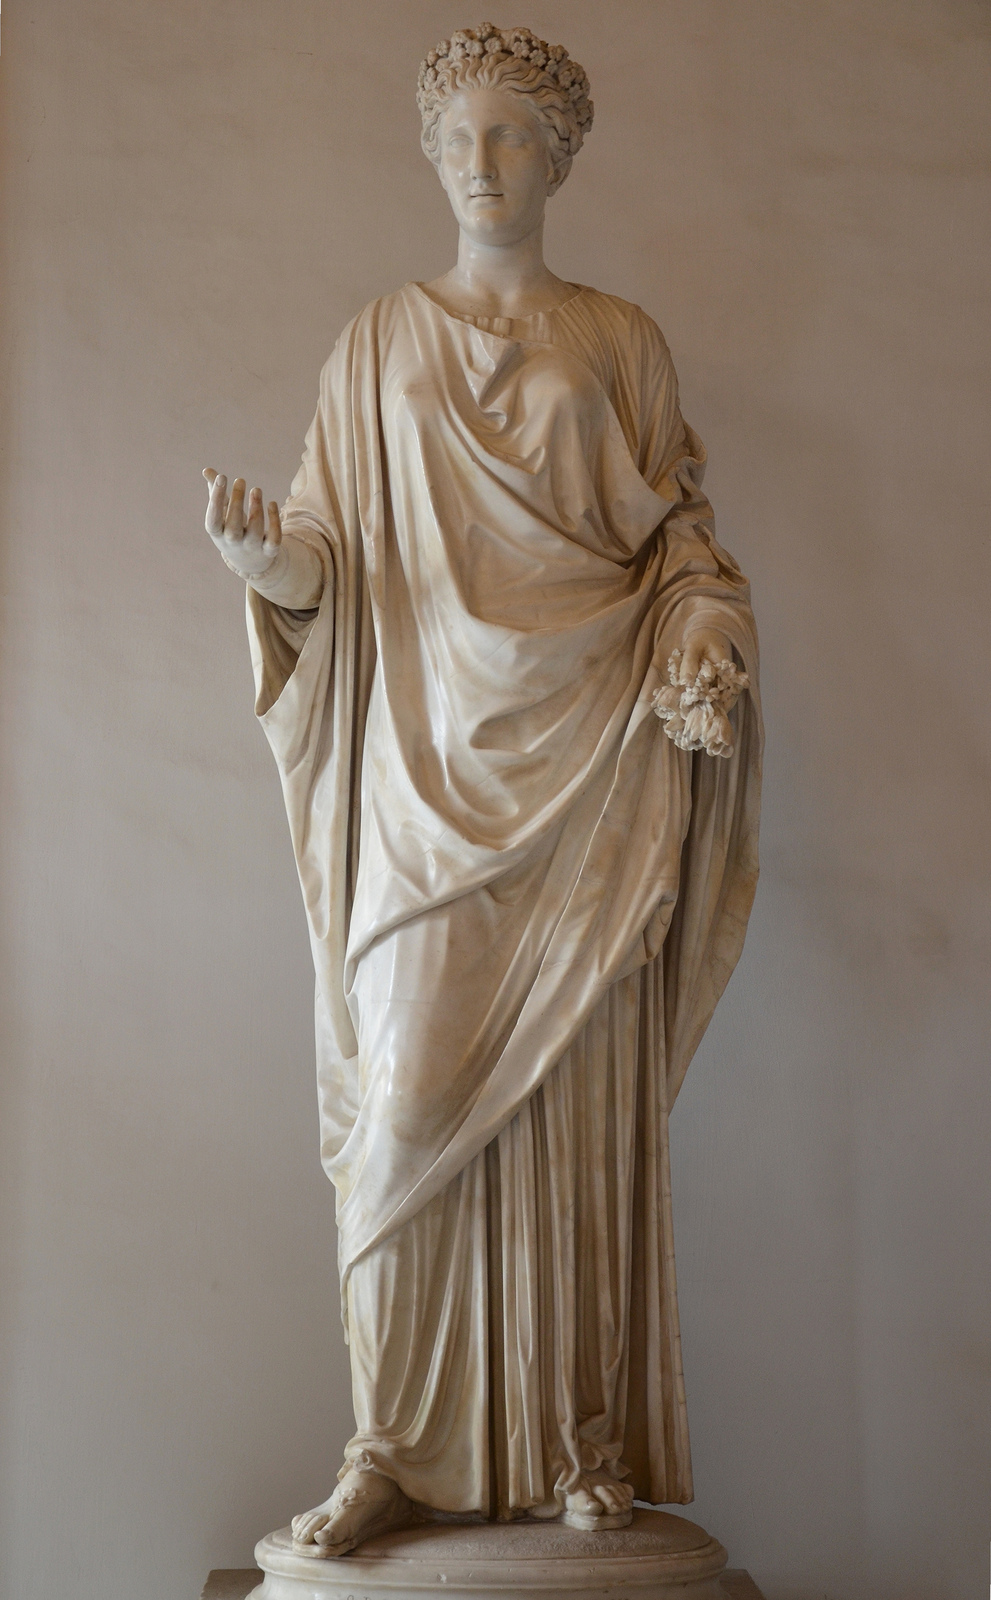 Art and sculptures from Hadrian's Villa: Marble statue of Flora, goddess of flowers and the season of spring